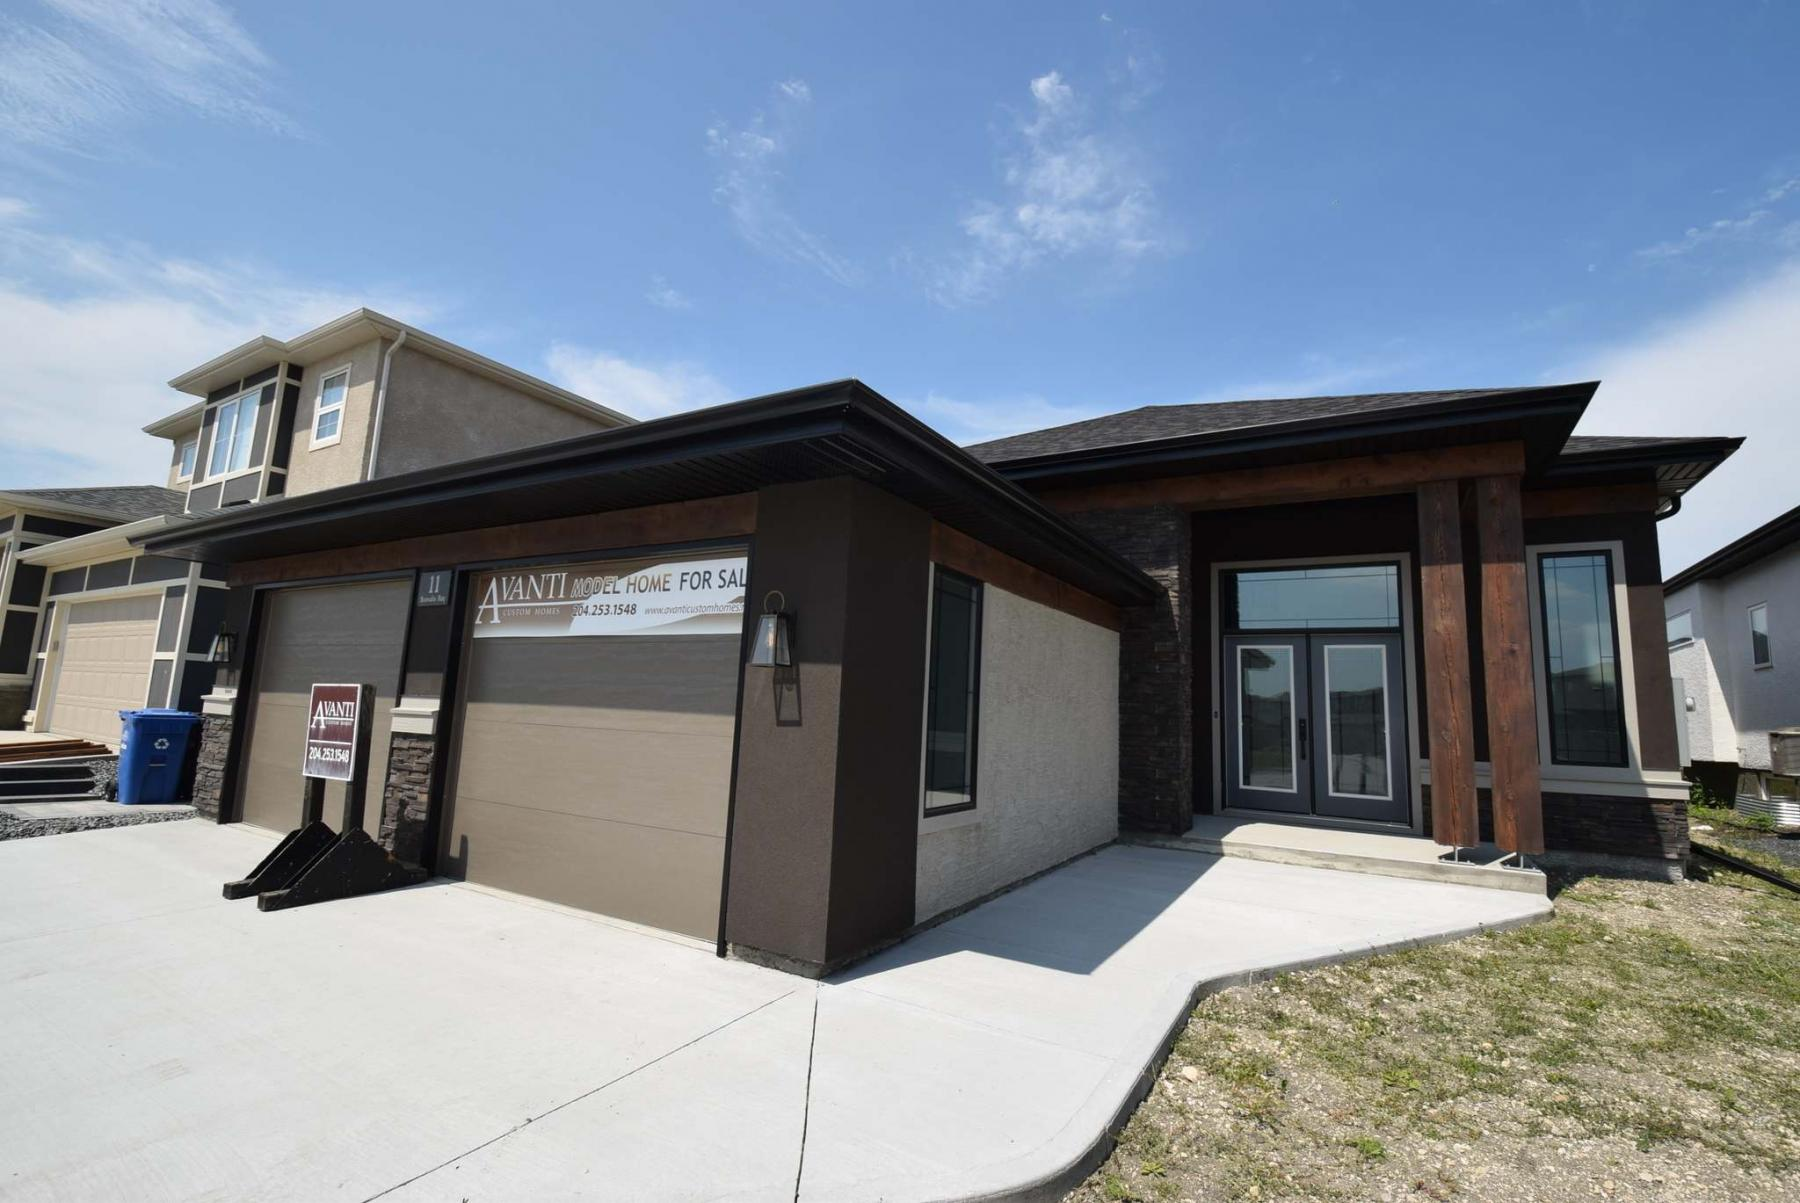 The home may well be the only high-end bungalow left for sale in Sage Creek, and it's priced to move. (Photos by Todd Lewys / Winnipeg Free Press)